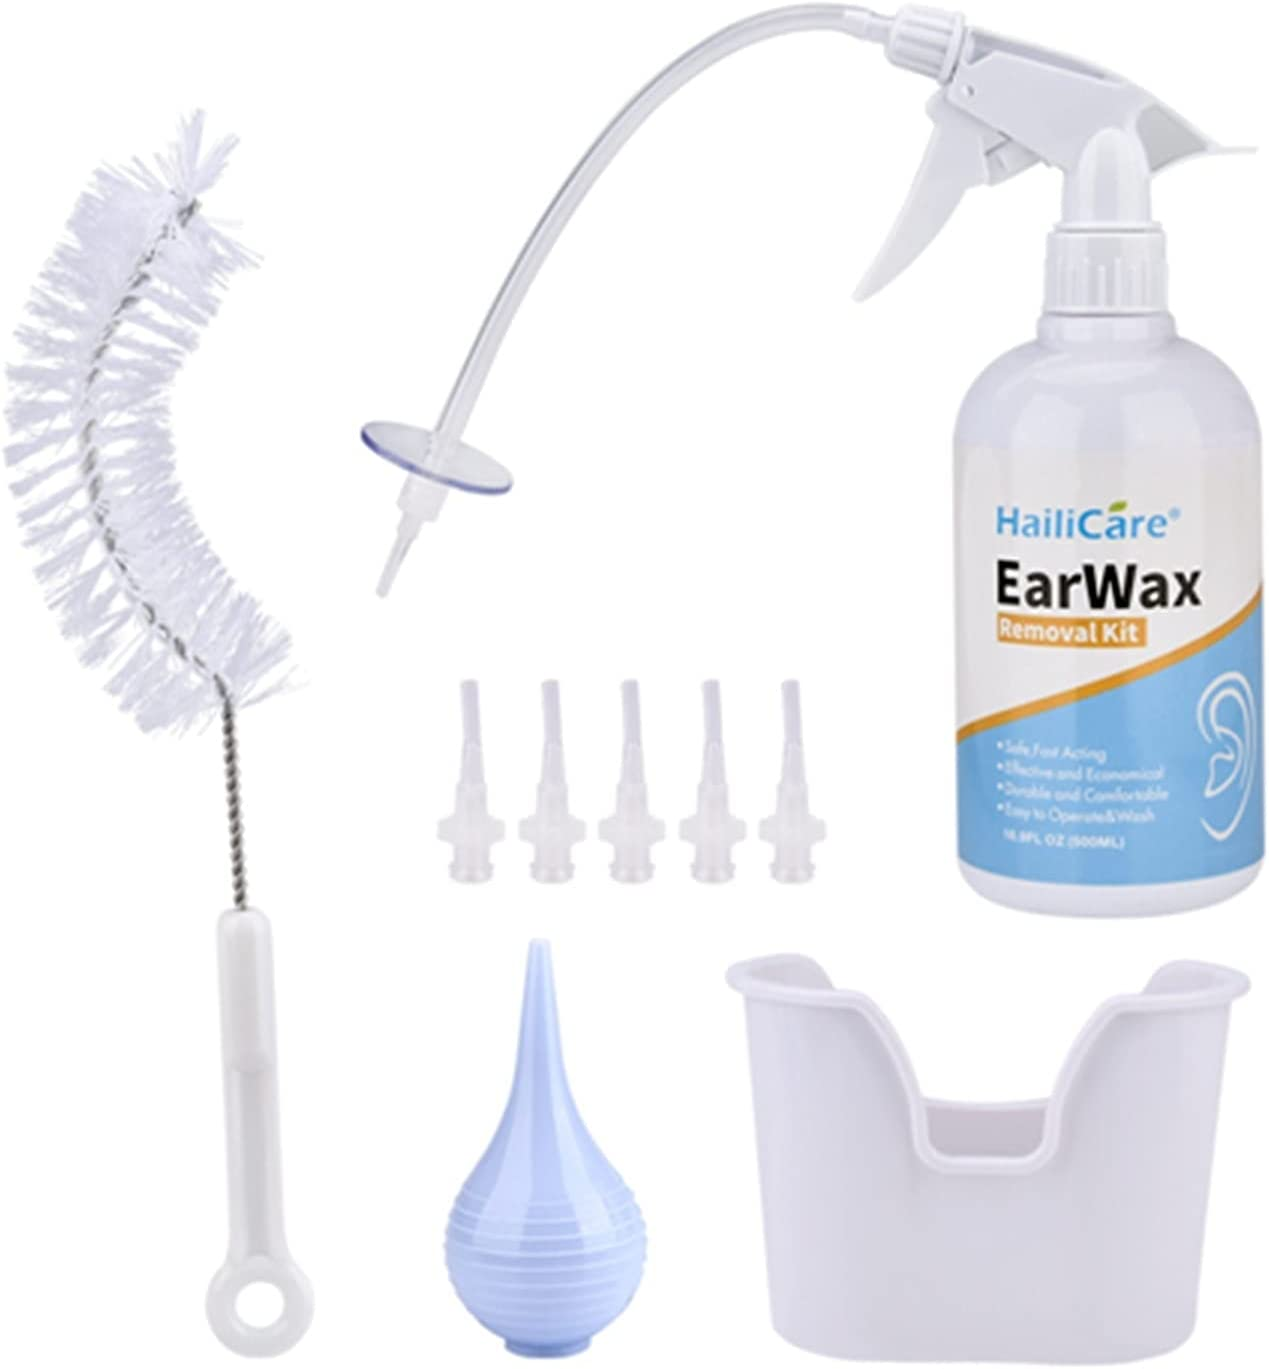 Pointedd Ear Irrigation Cleaning Kit Ea with Wax Removal New mail order Max 61% OFF